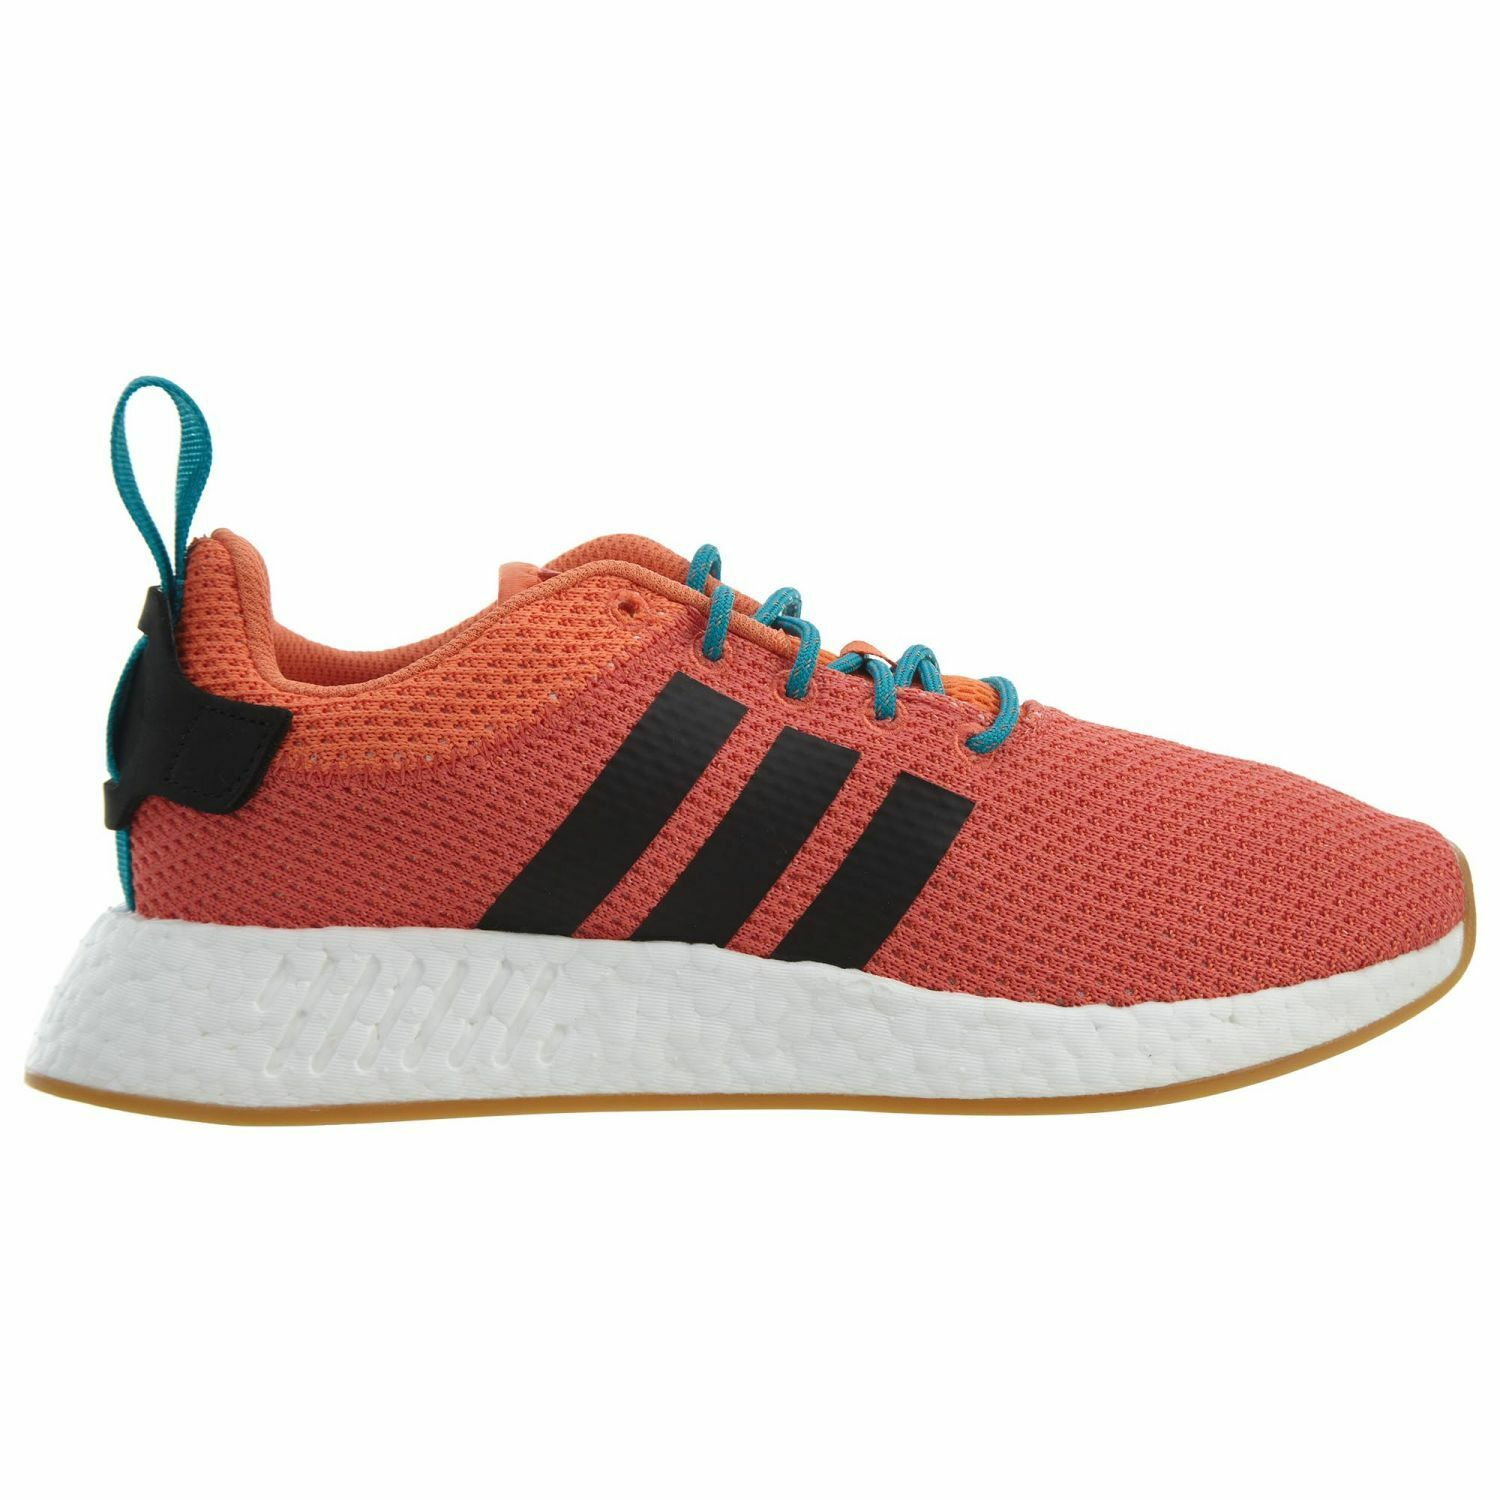 adidas nmd_r2 summer summer summer   cq3081 trace knit stimuler baskets taille 8 orange 0a783a